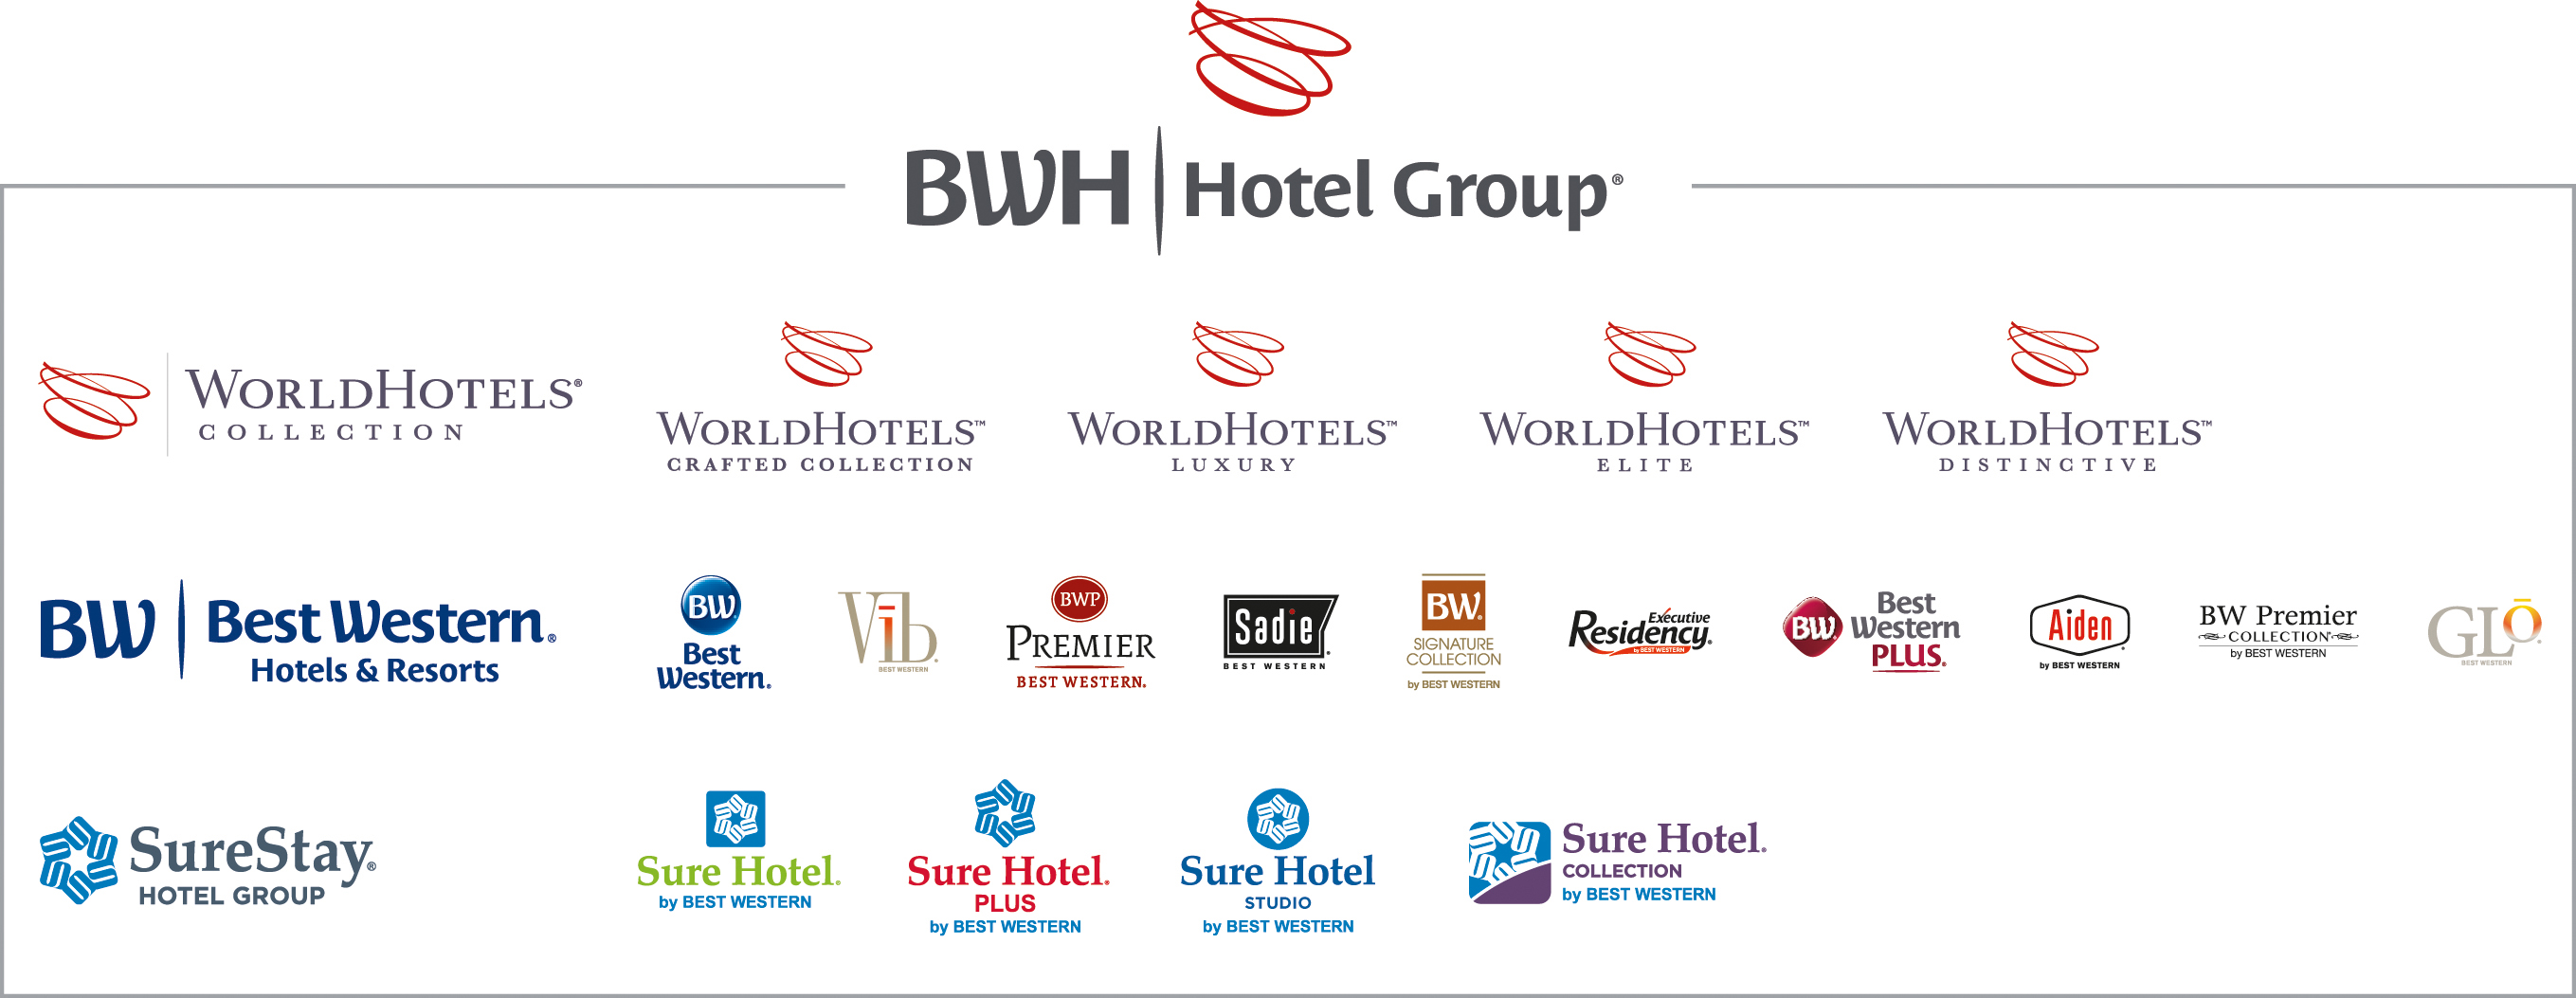 BWH Hotel Group Logos